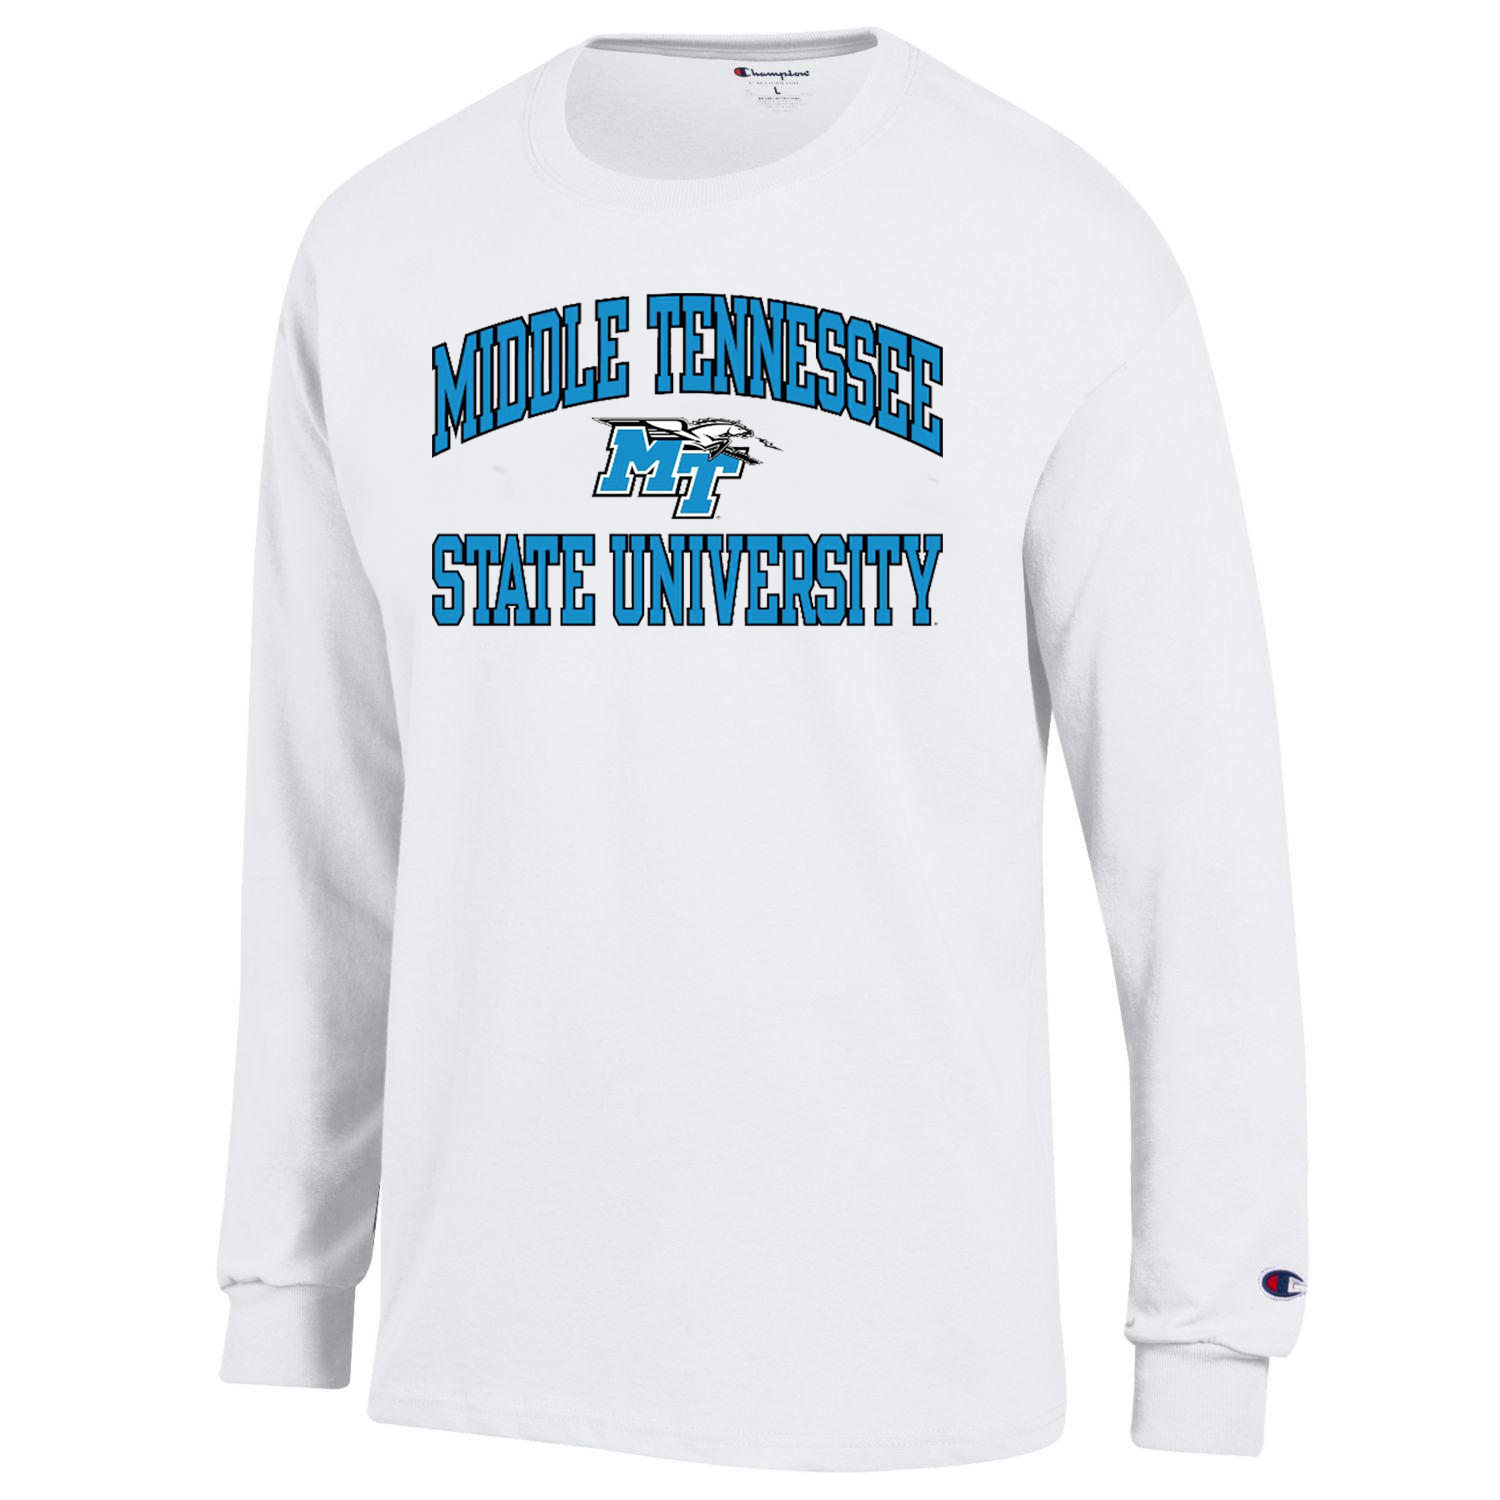 Middle Tennessee State University Arched MT Logo w/ Lightning Long Sleeve Shirt